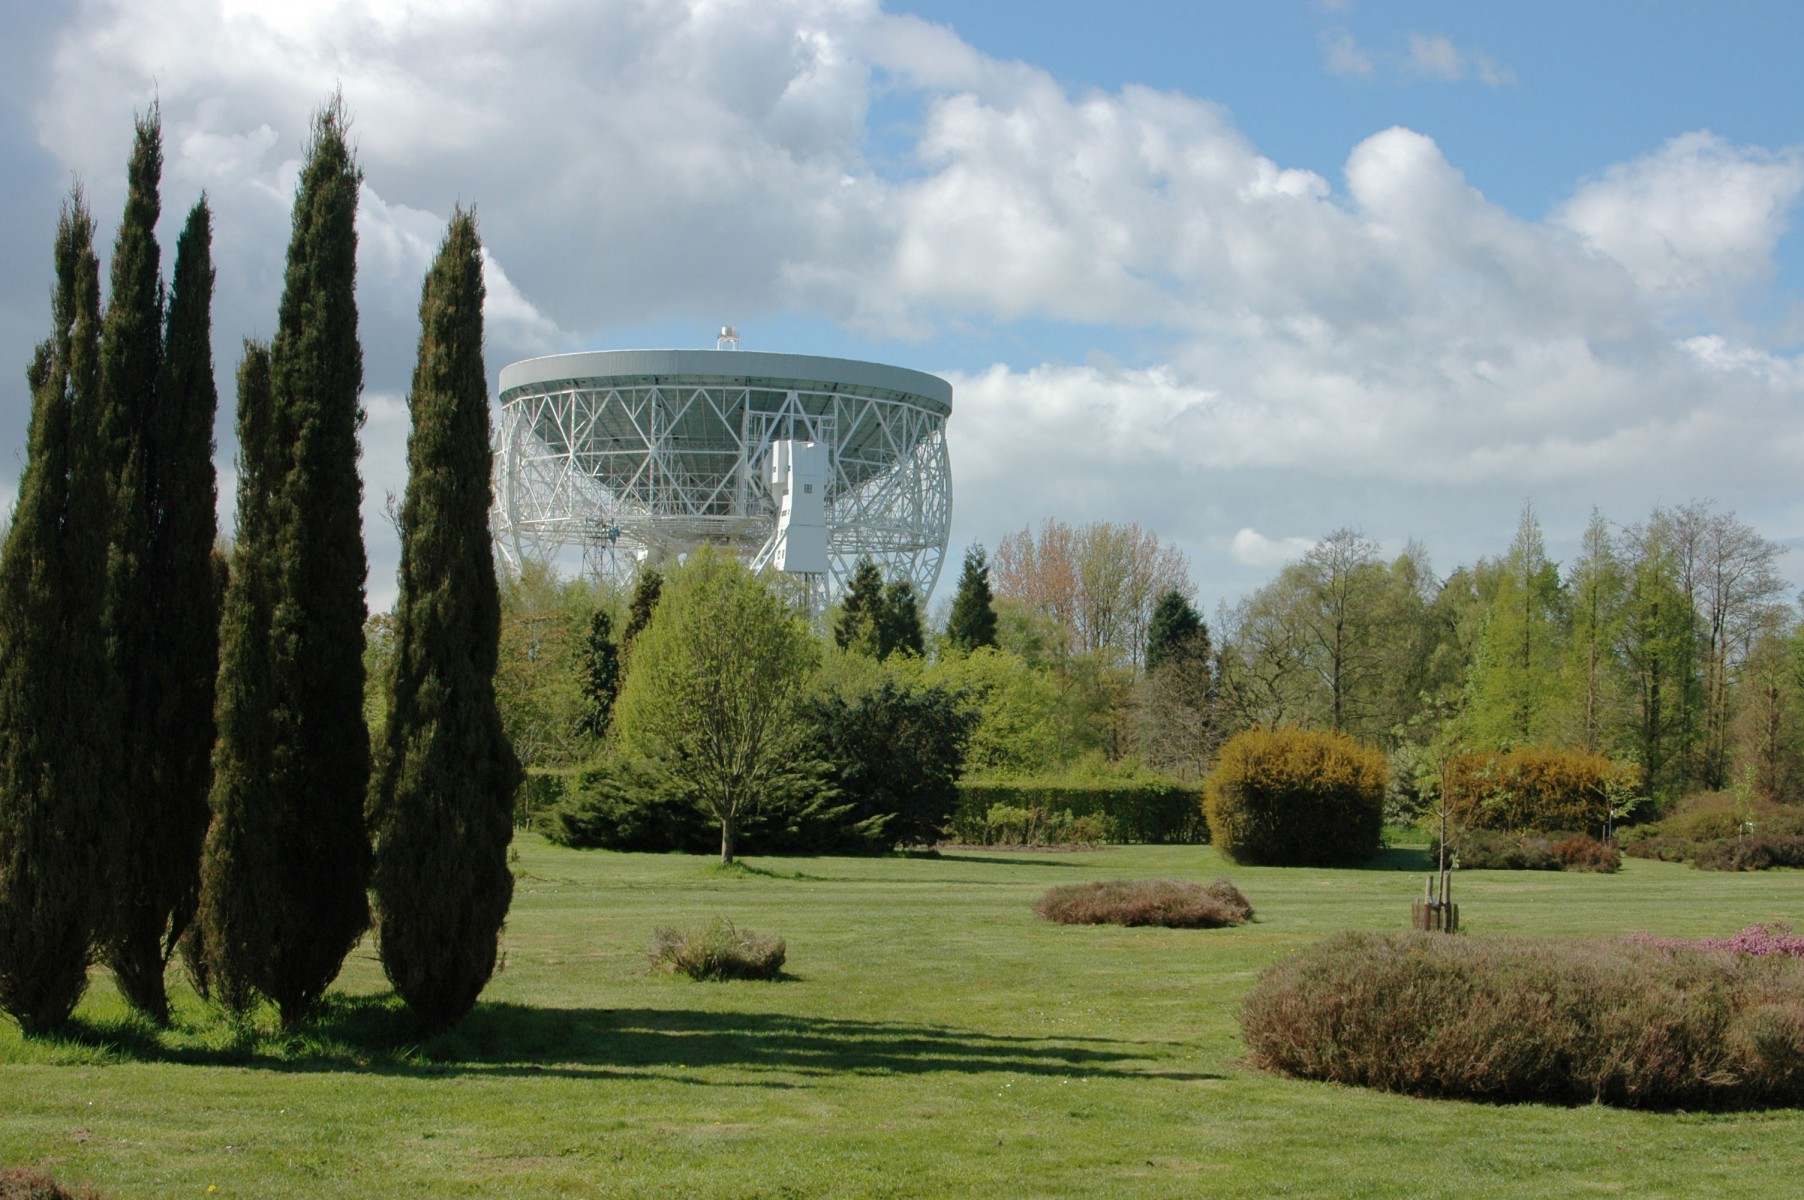 Jodrell Bank selected as United Kingdom candidate for World Heritage site nomination